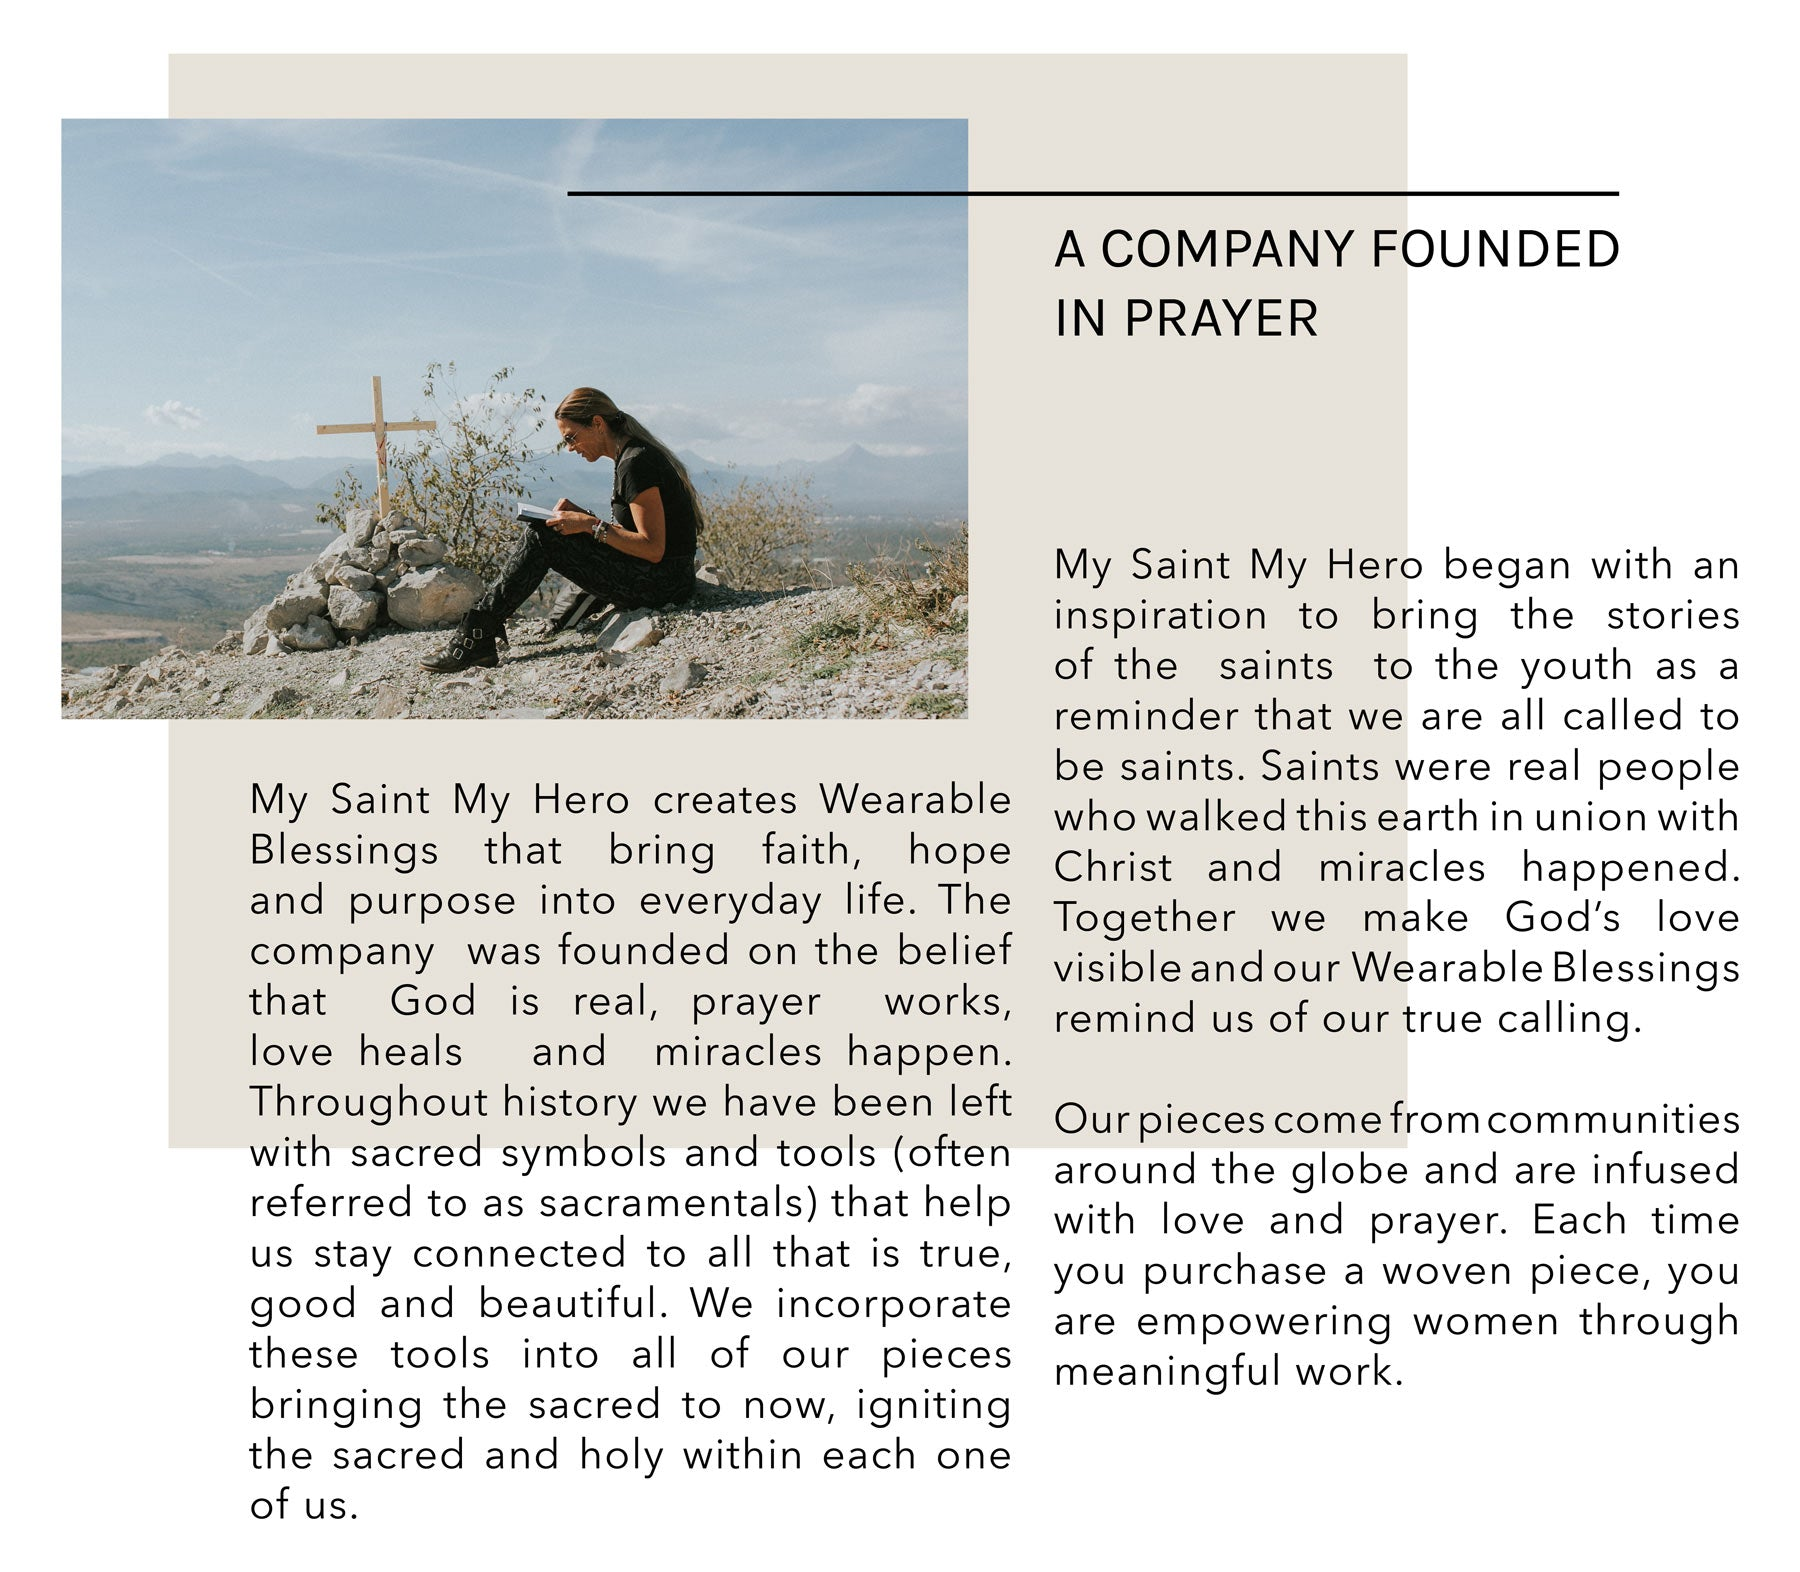 My Saint My Hero Founder Amy Dambra in prayer